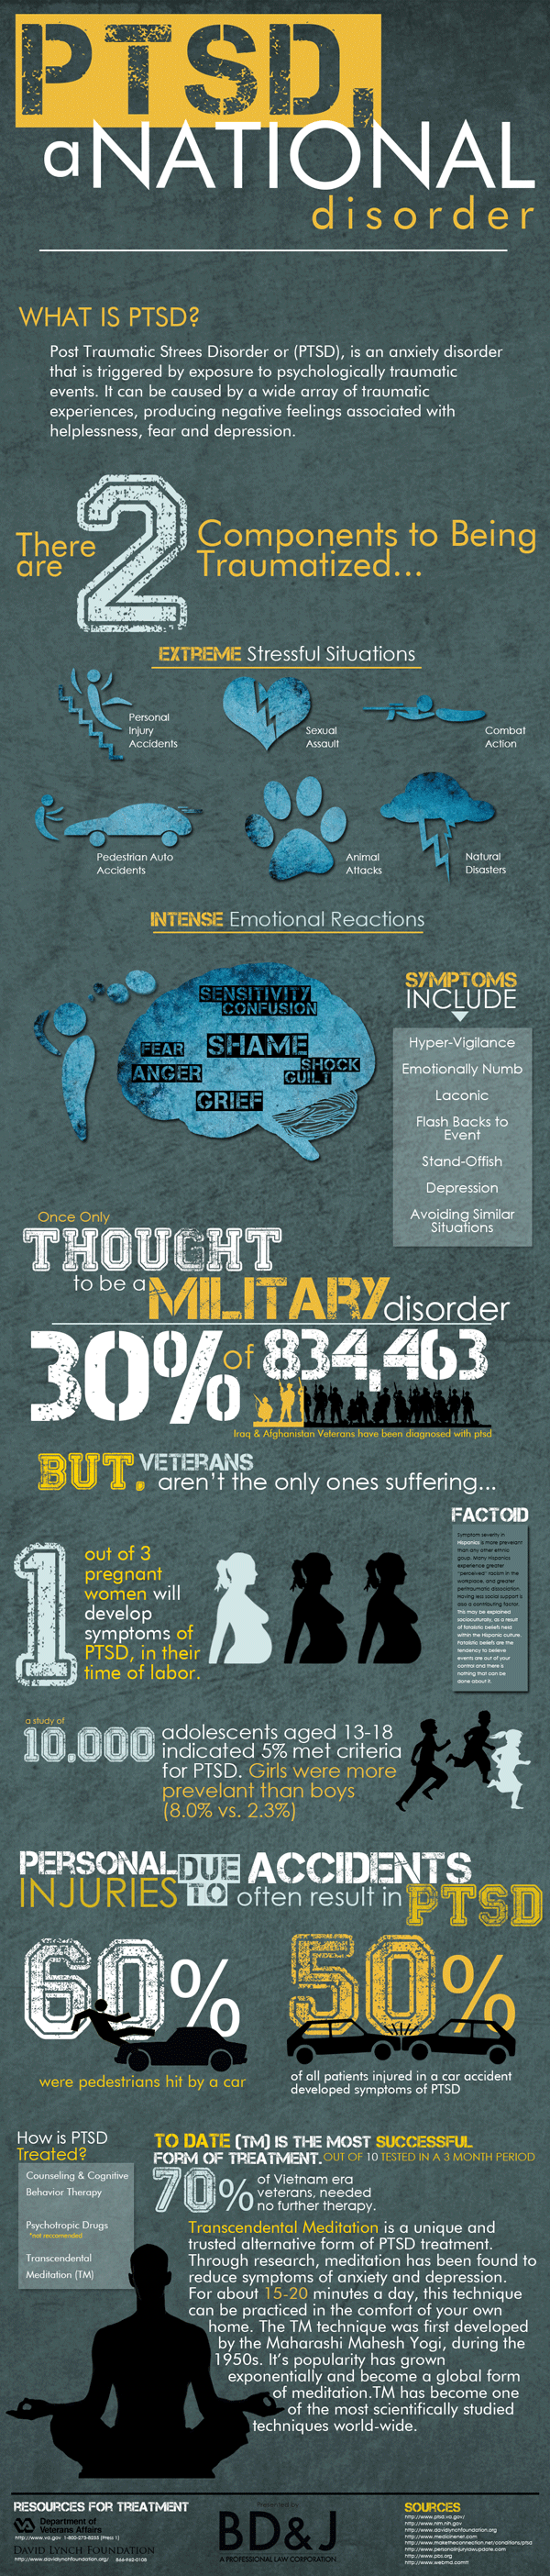 PTSD, A National Disorder